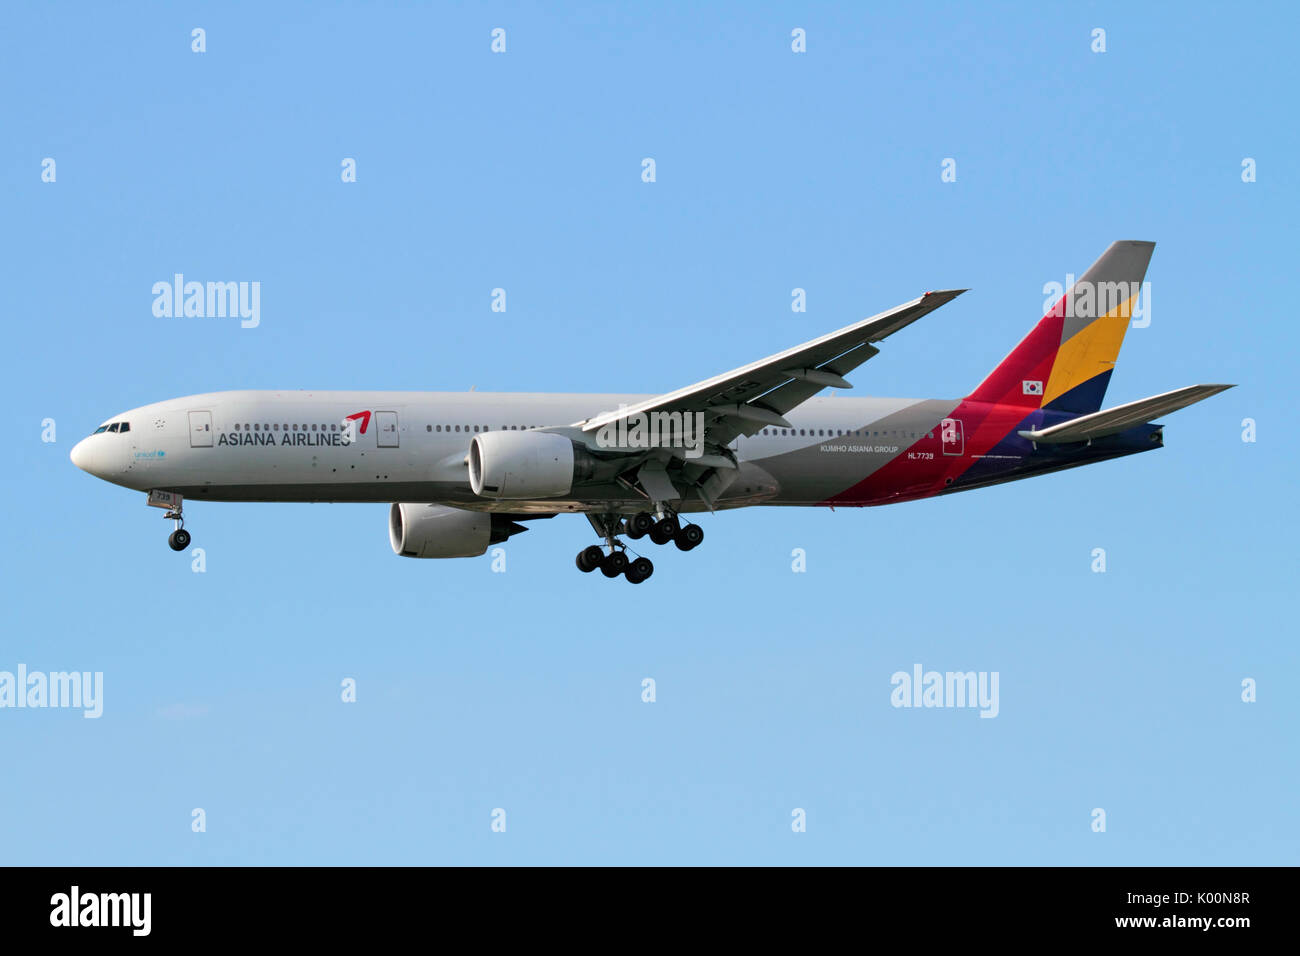 Transport aérien long-courrier. Asiana Airlines Boeing 777-200ER en approche Photo Stock